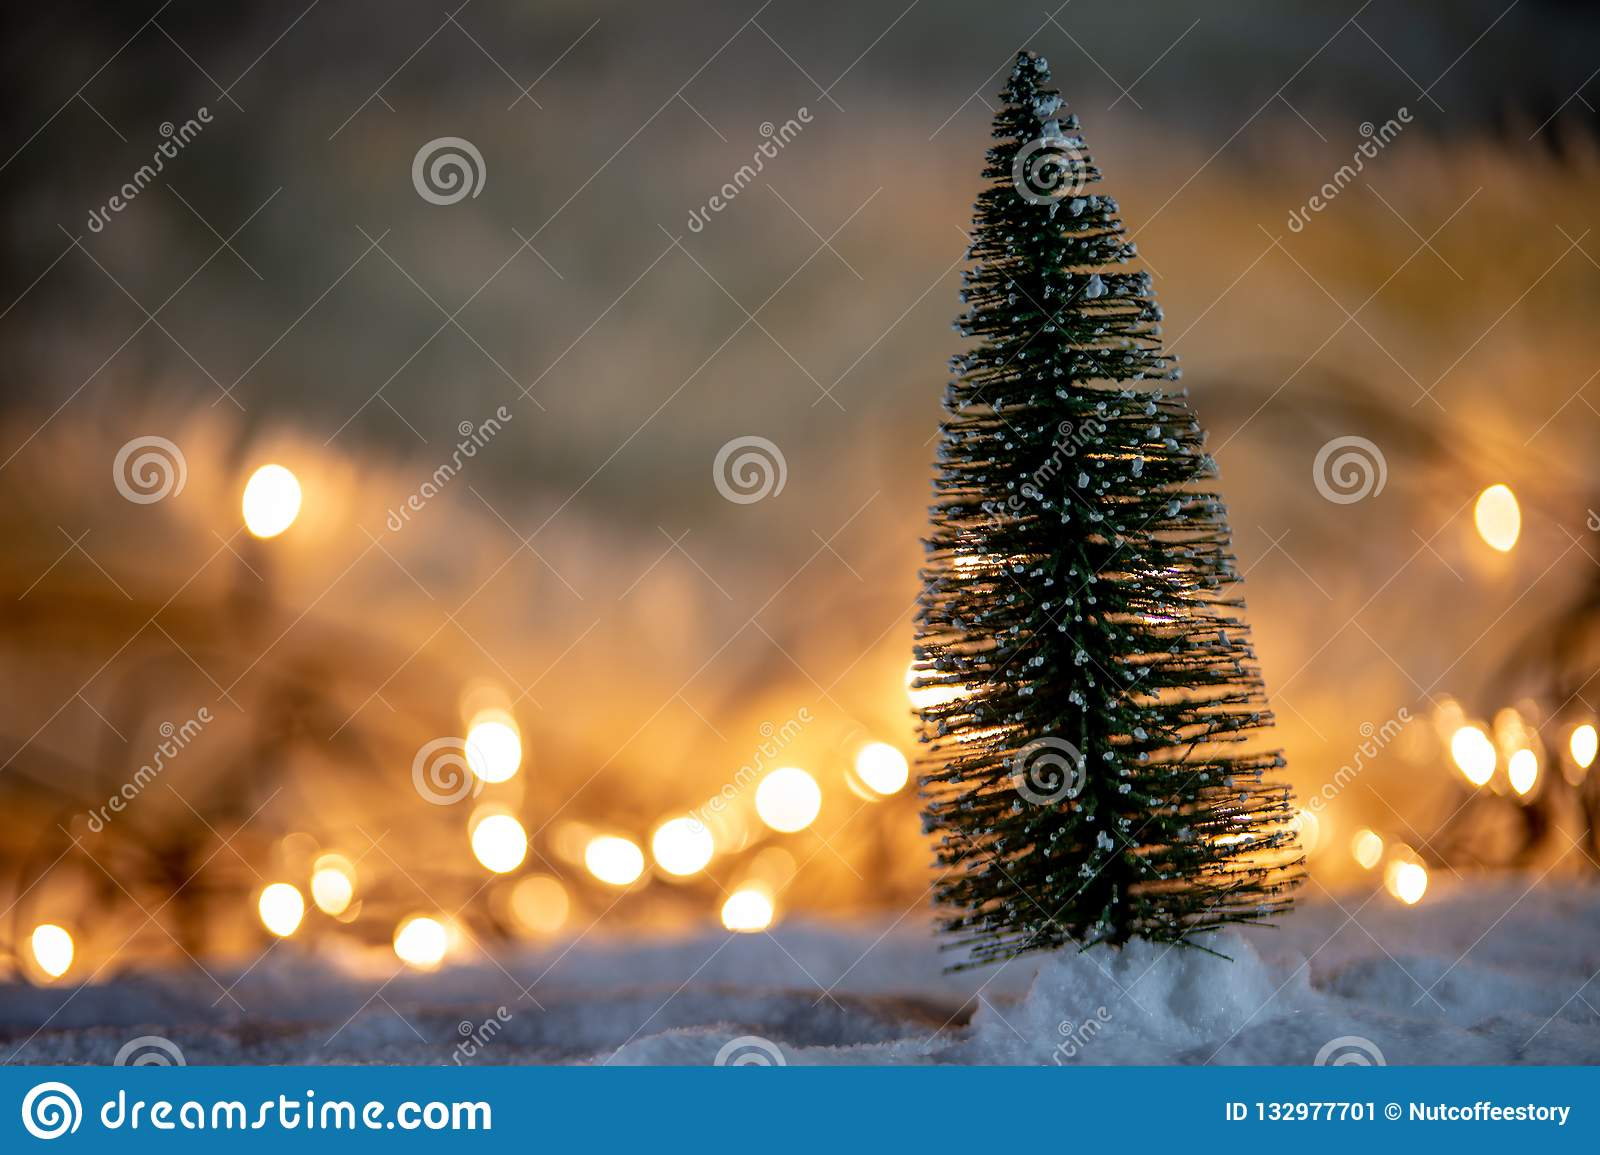 christmas tree snow gift light bokeh backgrounds snowy new year festive background 132977701